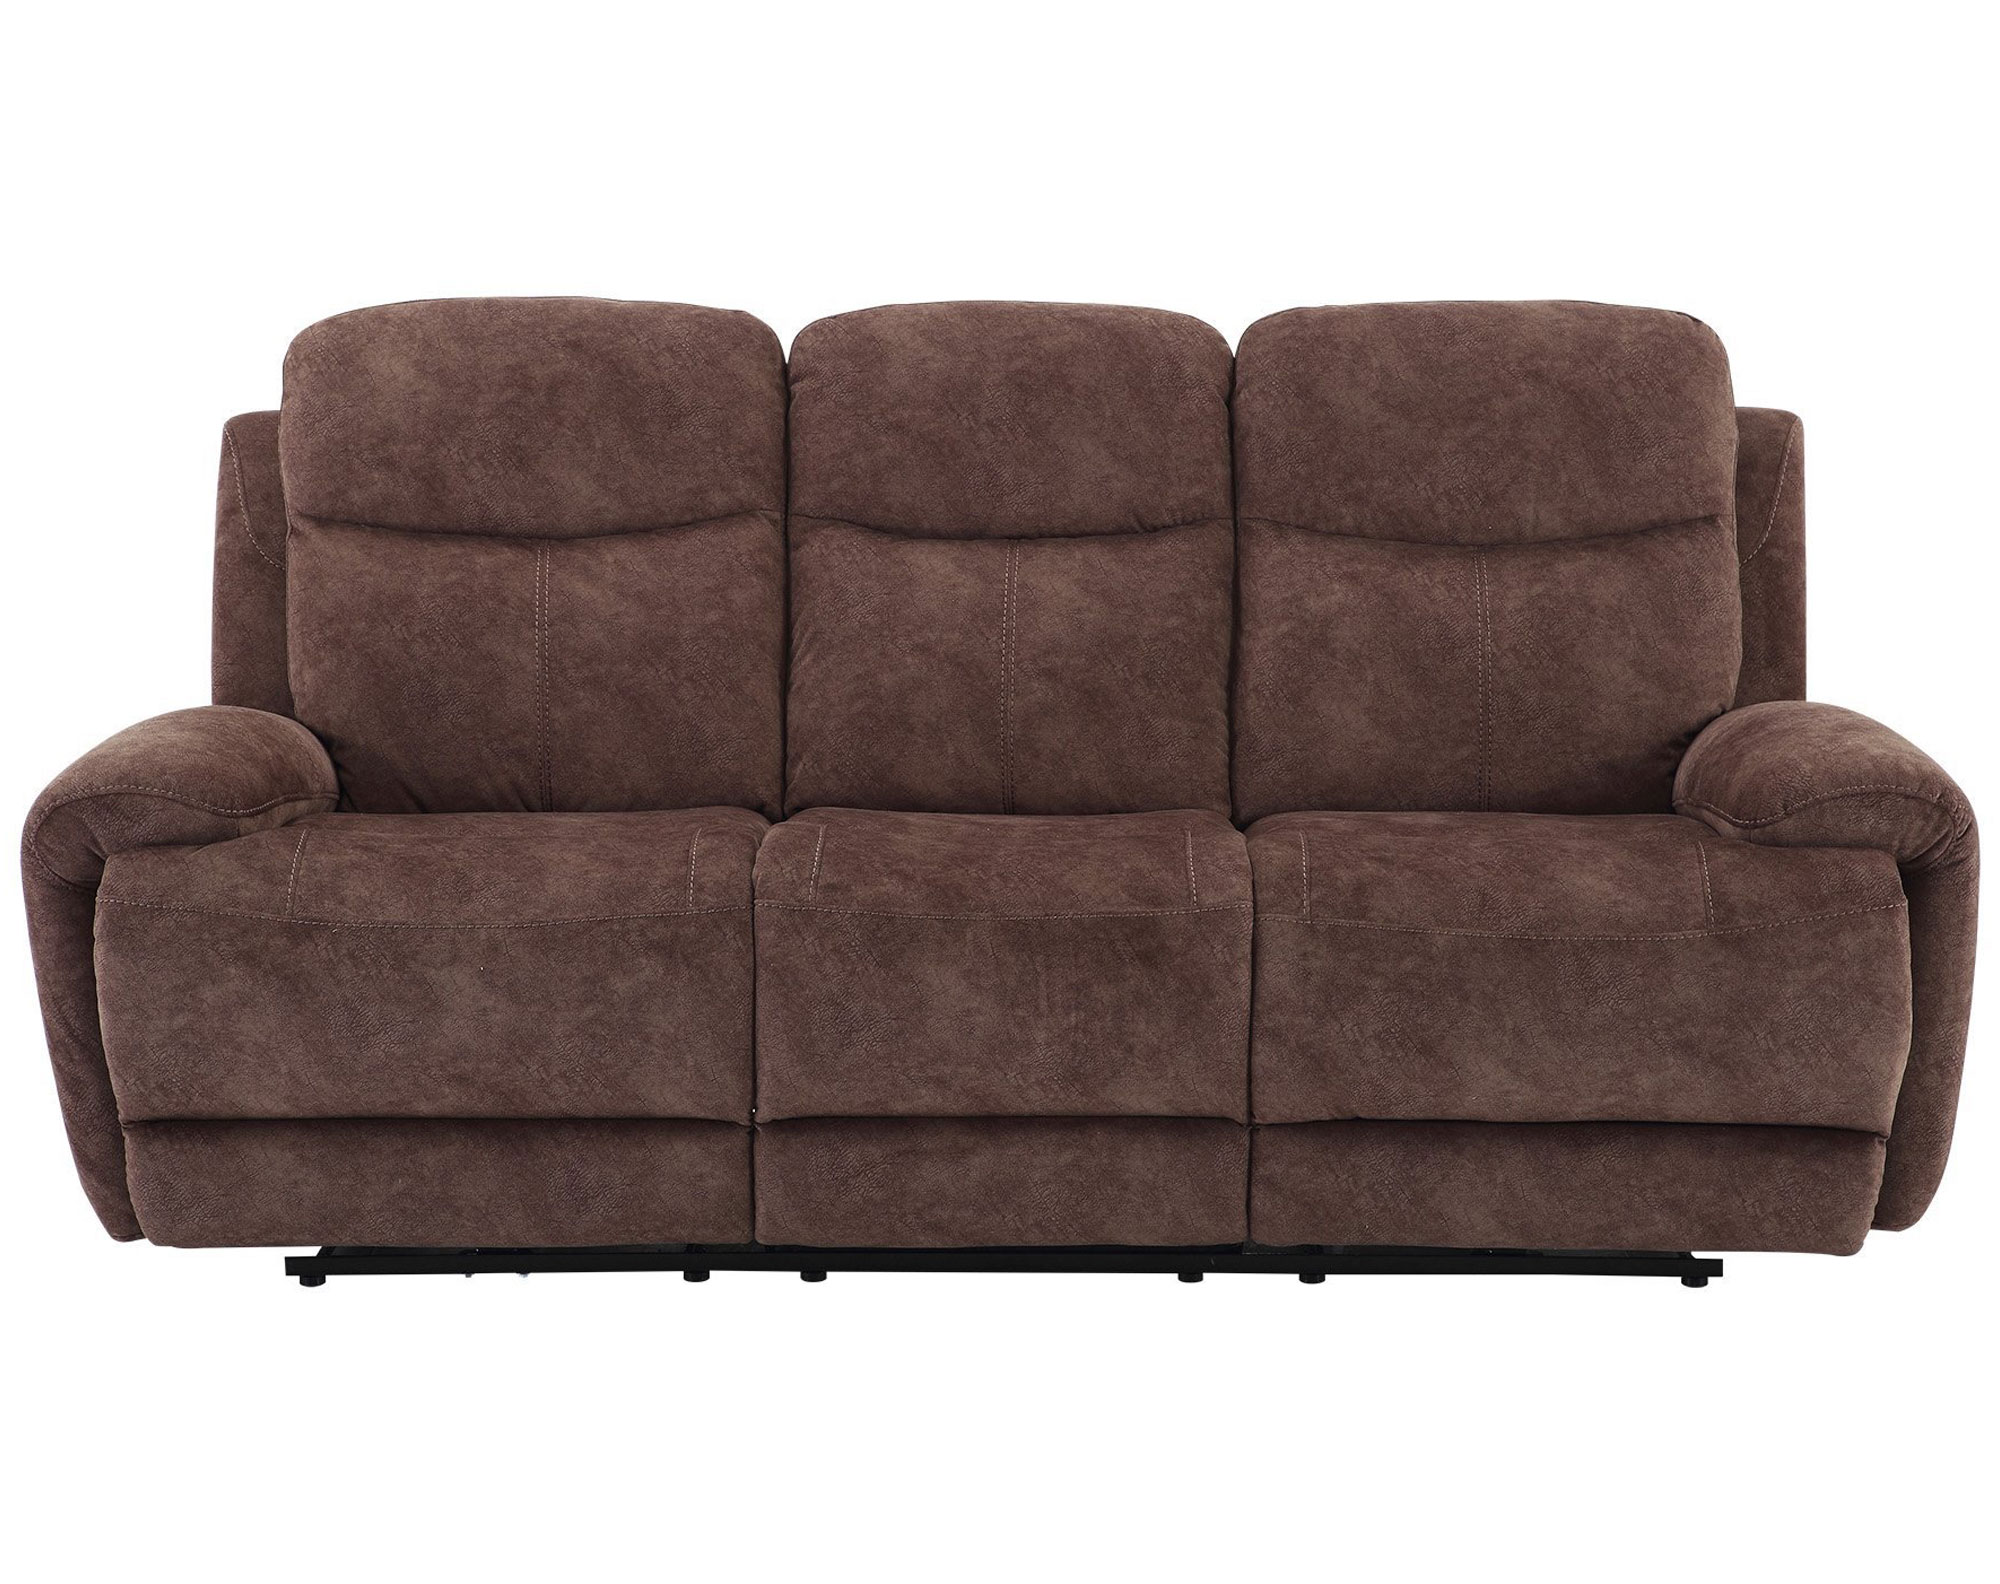 Magnificent Bowie Range Power Reclining Sofa With Power Sofas And Caraccident5 Cool Chair Designs And Ideas Caraccident5Info